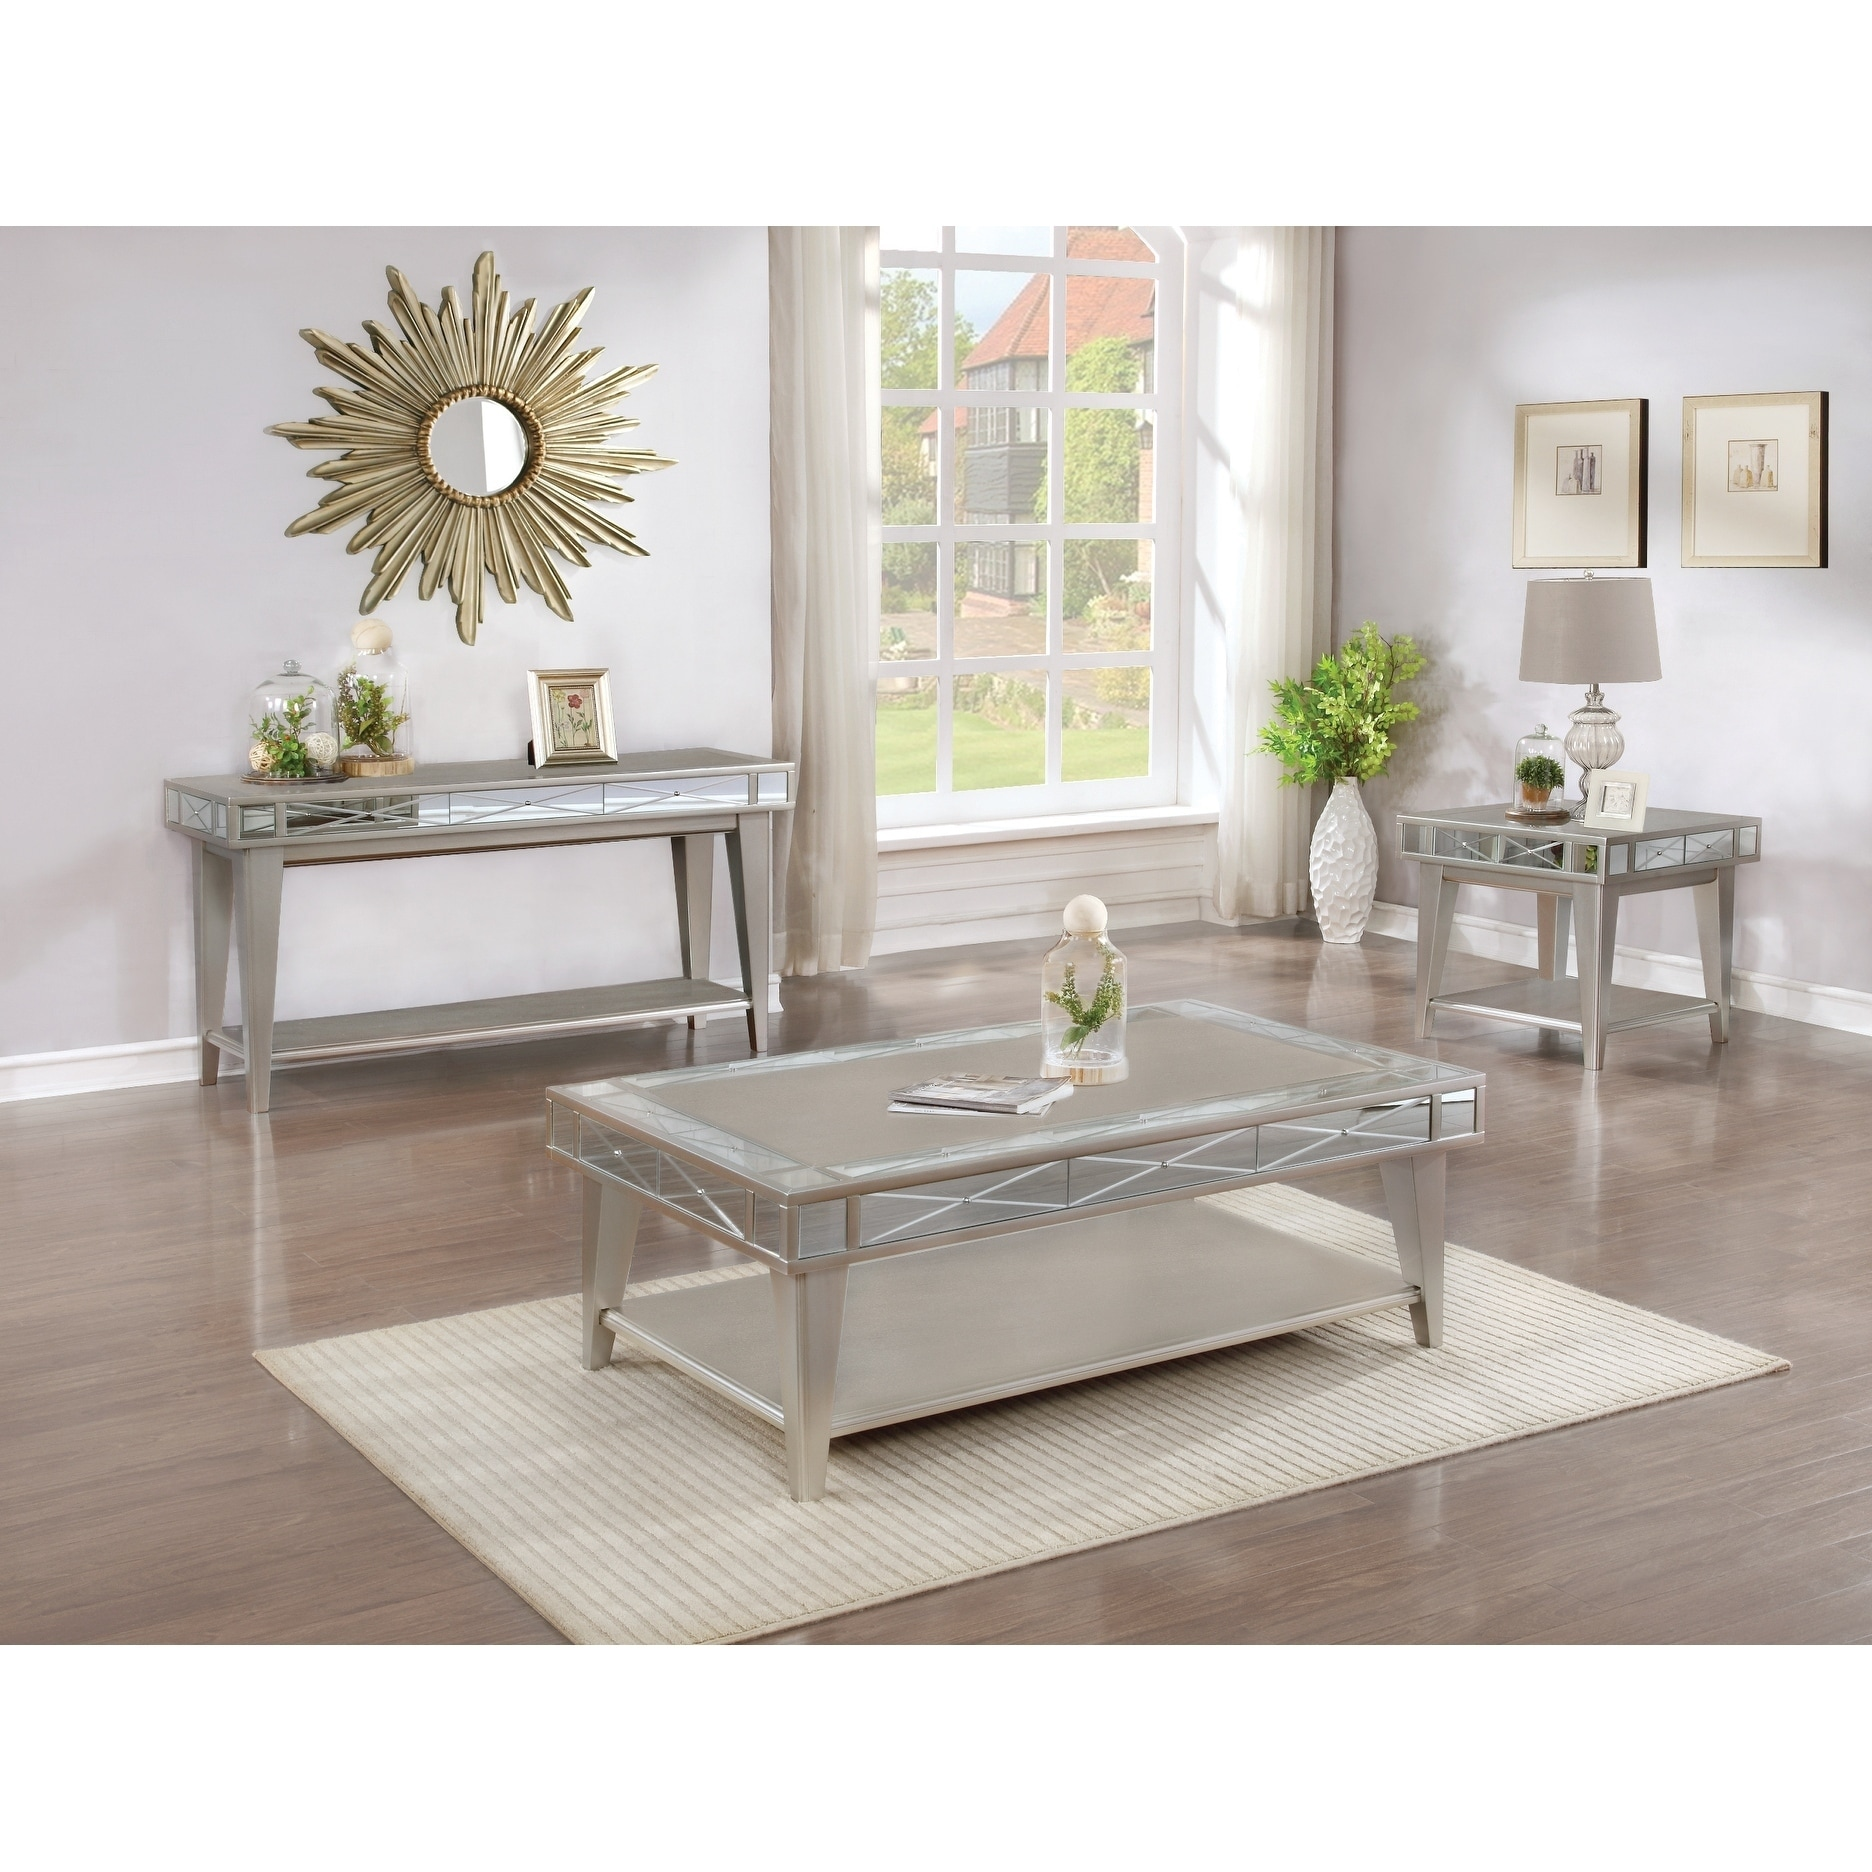 Mirrored Coffee Table 8